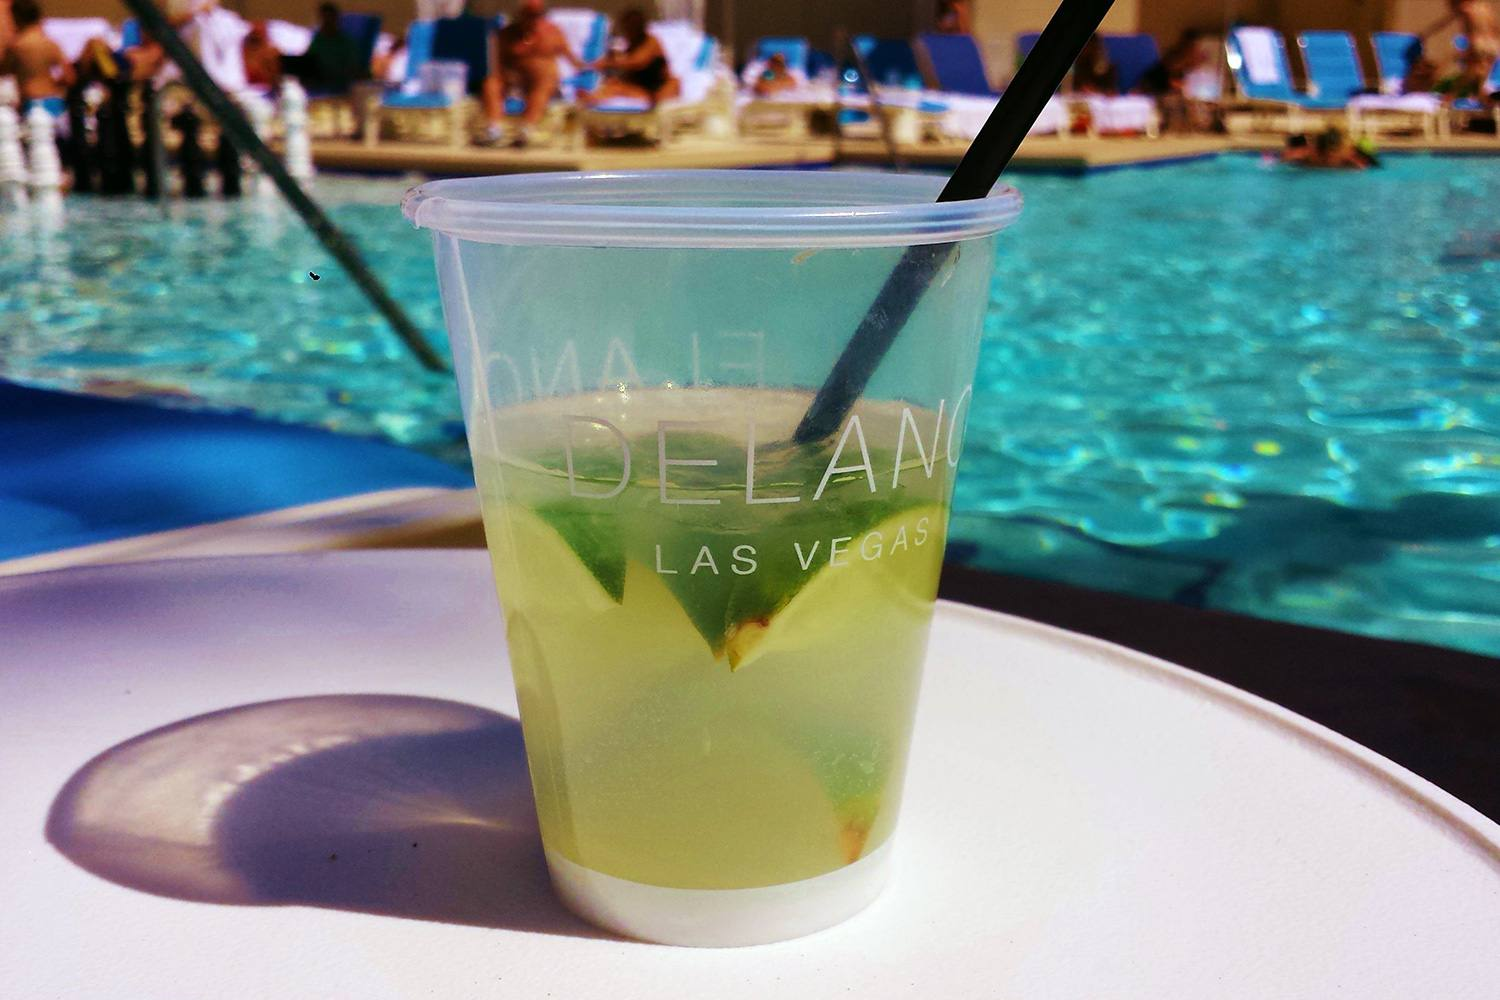 Delano Beach Club Las Vegas